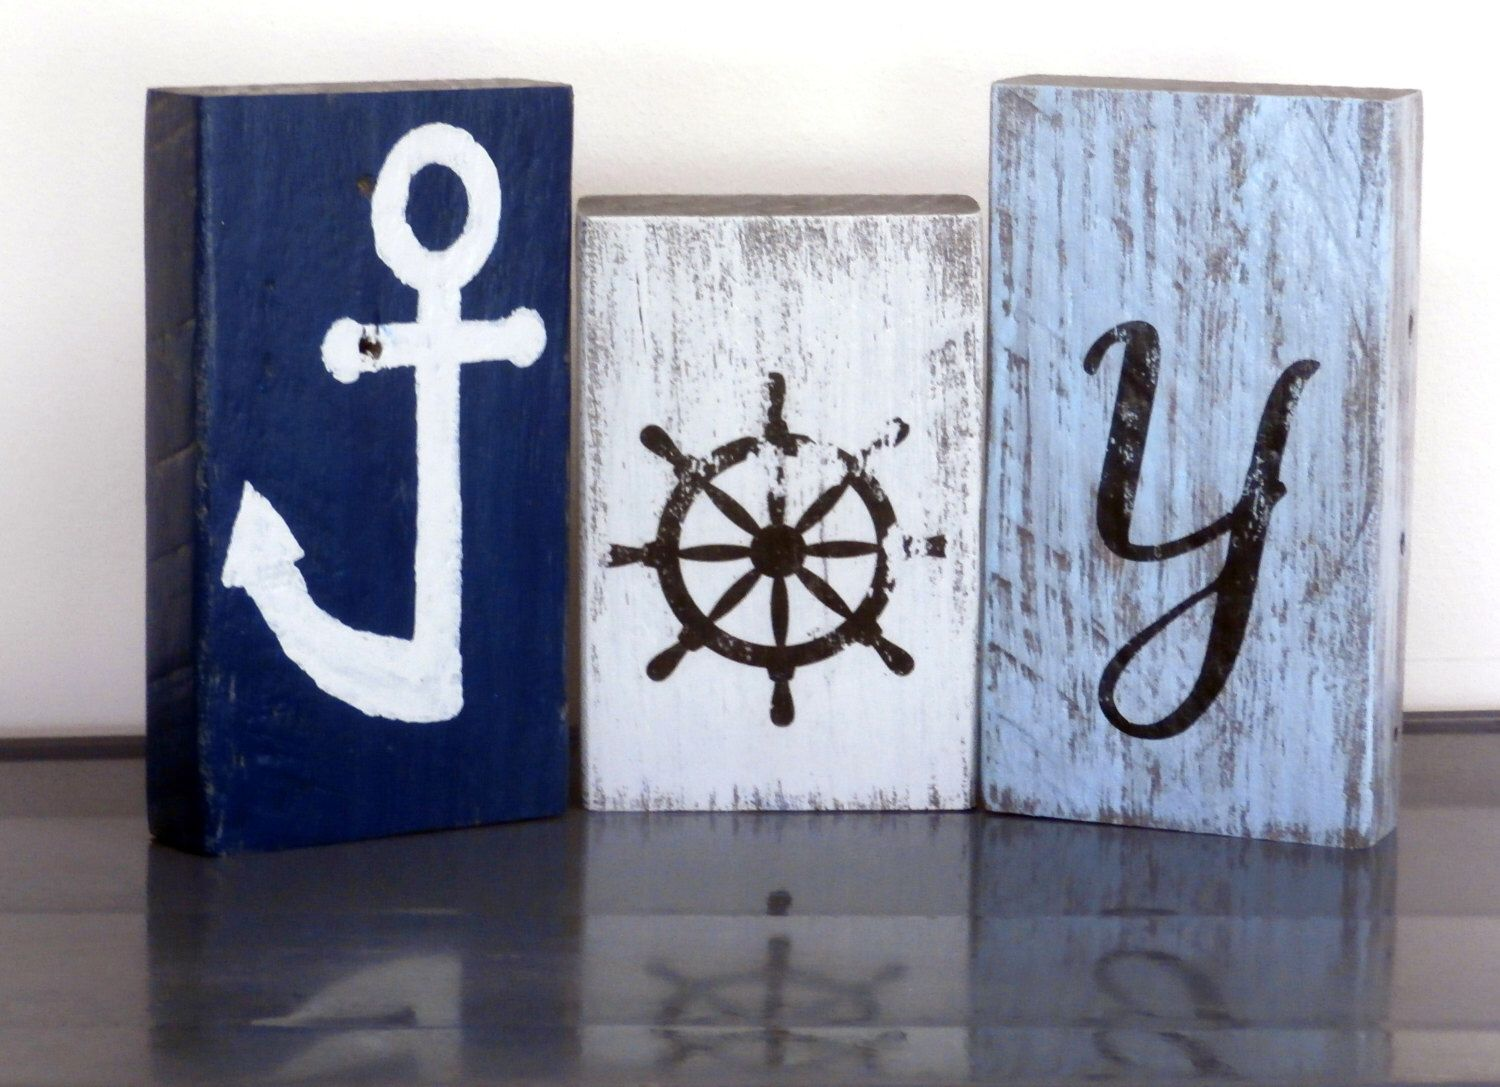 Beach Christmas Decor JOY Sign-Coastal Decor Shelf Sitters-Reclaimed Wood Sign-JOY Christmas Sign-Coastal Christmas-Mantel Decorations by RusticForestStudio on Etsy https://www.etsy.com/listing/481964053/beach-christmas-decor-joy-sign-coastal